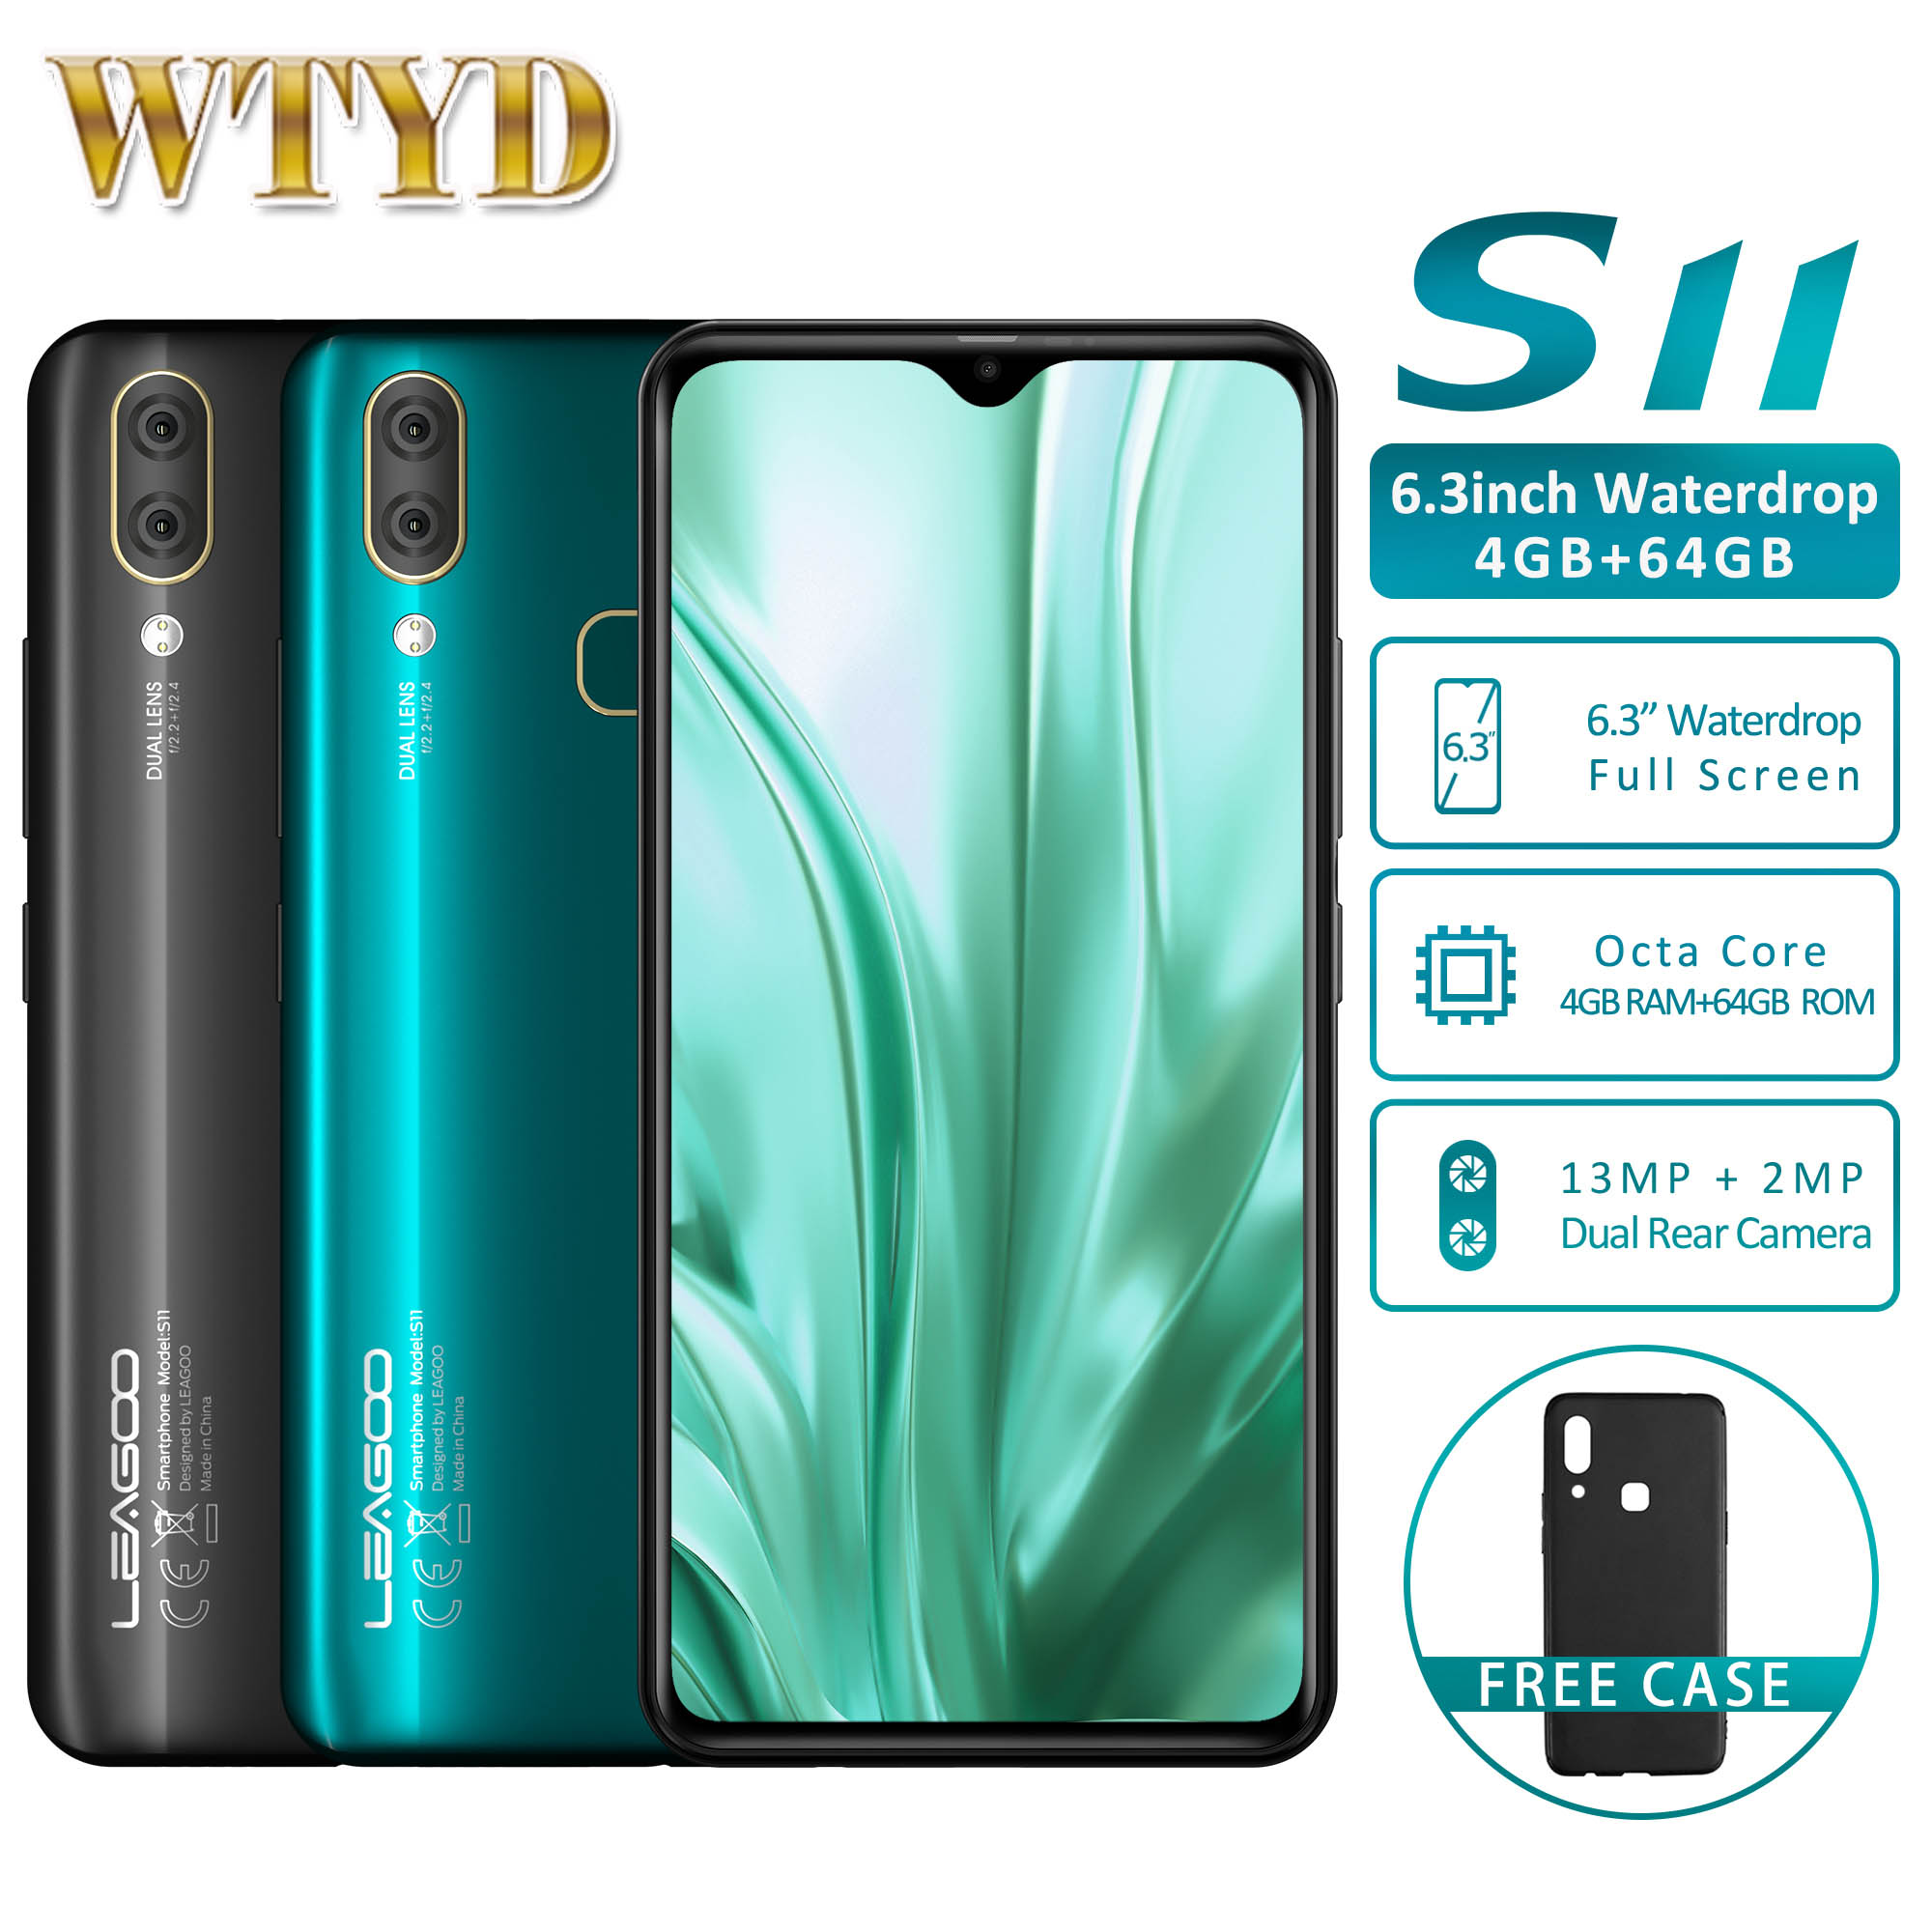 "LEAGOO S11 4GB RAM 64GB ROM Octa Core Android 9.0 4G Mobile Phone 6.3"" Waterdrop Screen 13MP 3300mAh Fingerprint Smartphone-in Cellphones from Cellphones & Telecommunications    1"